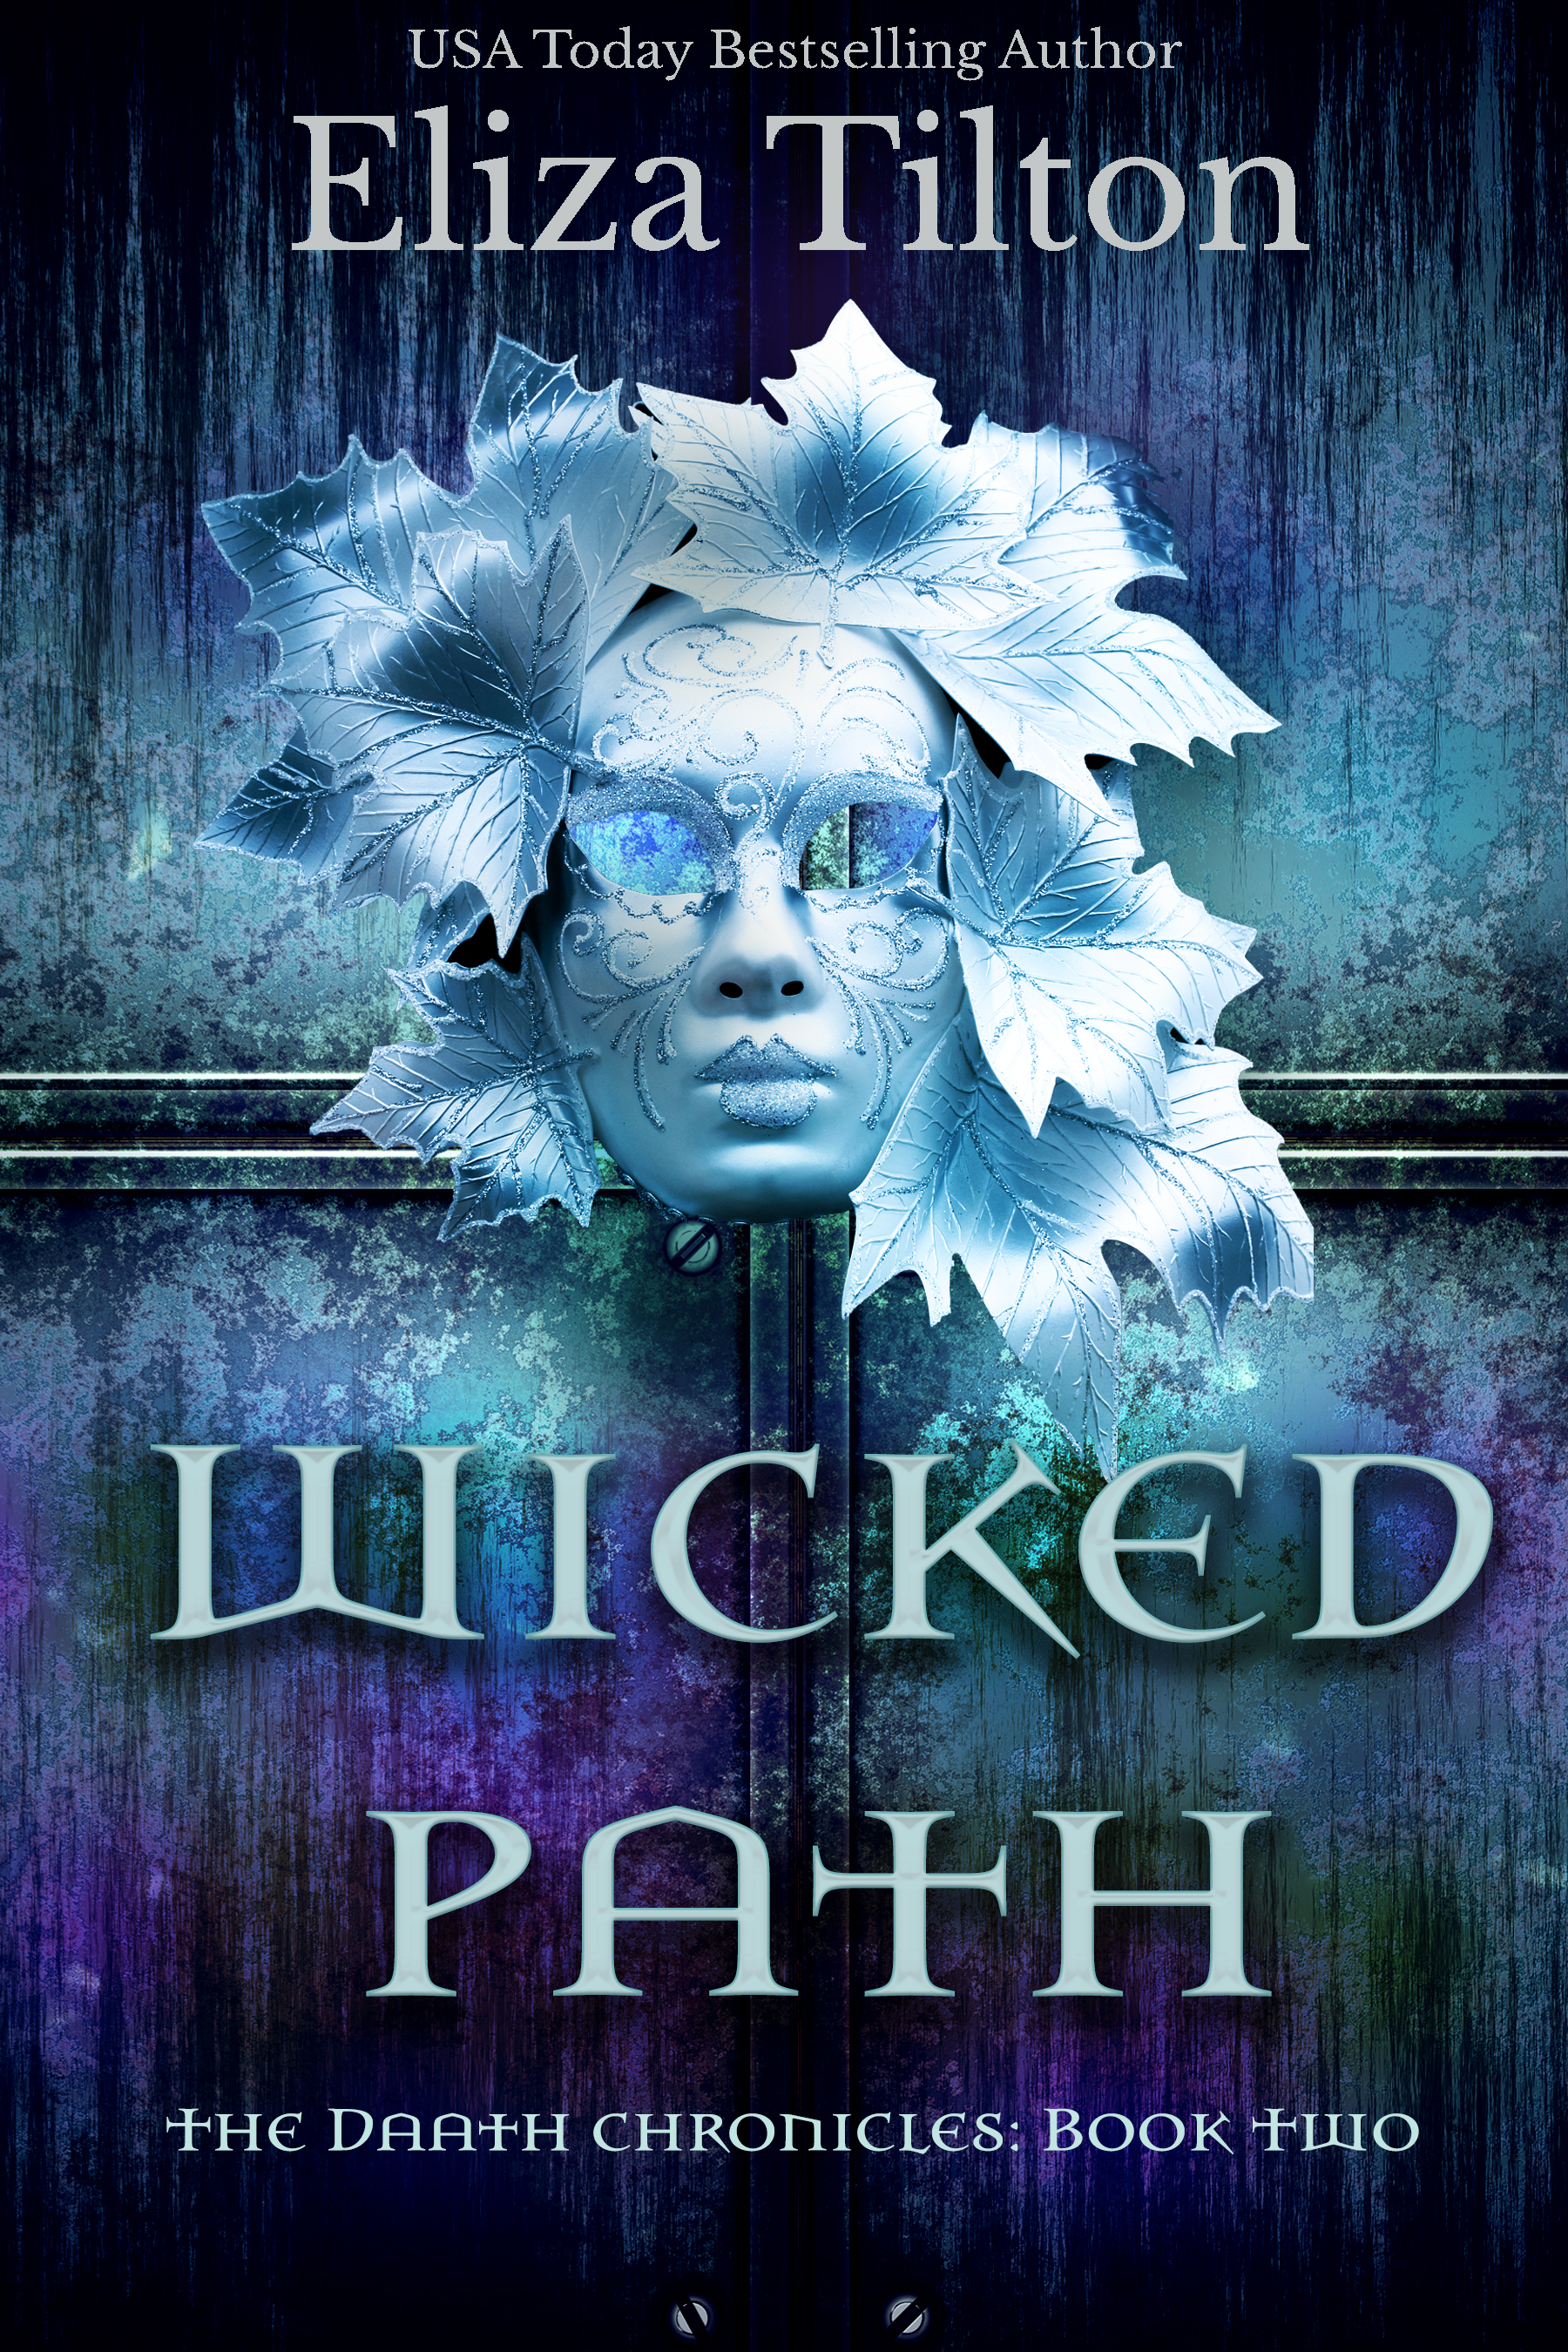 Wicked Path (Daath Chronicles Book 2)